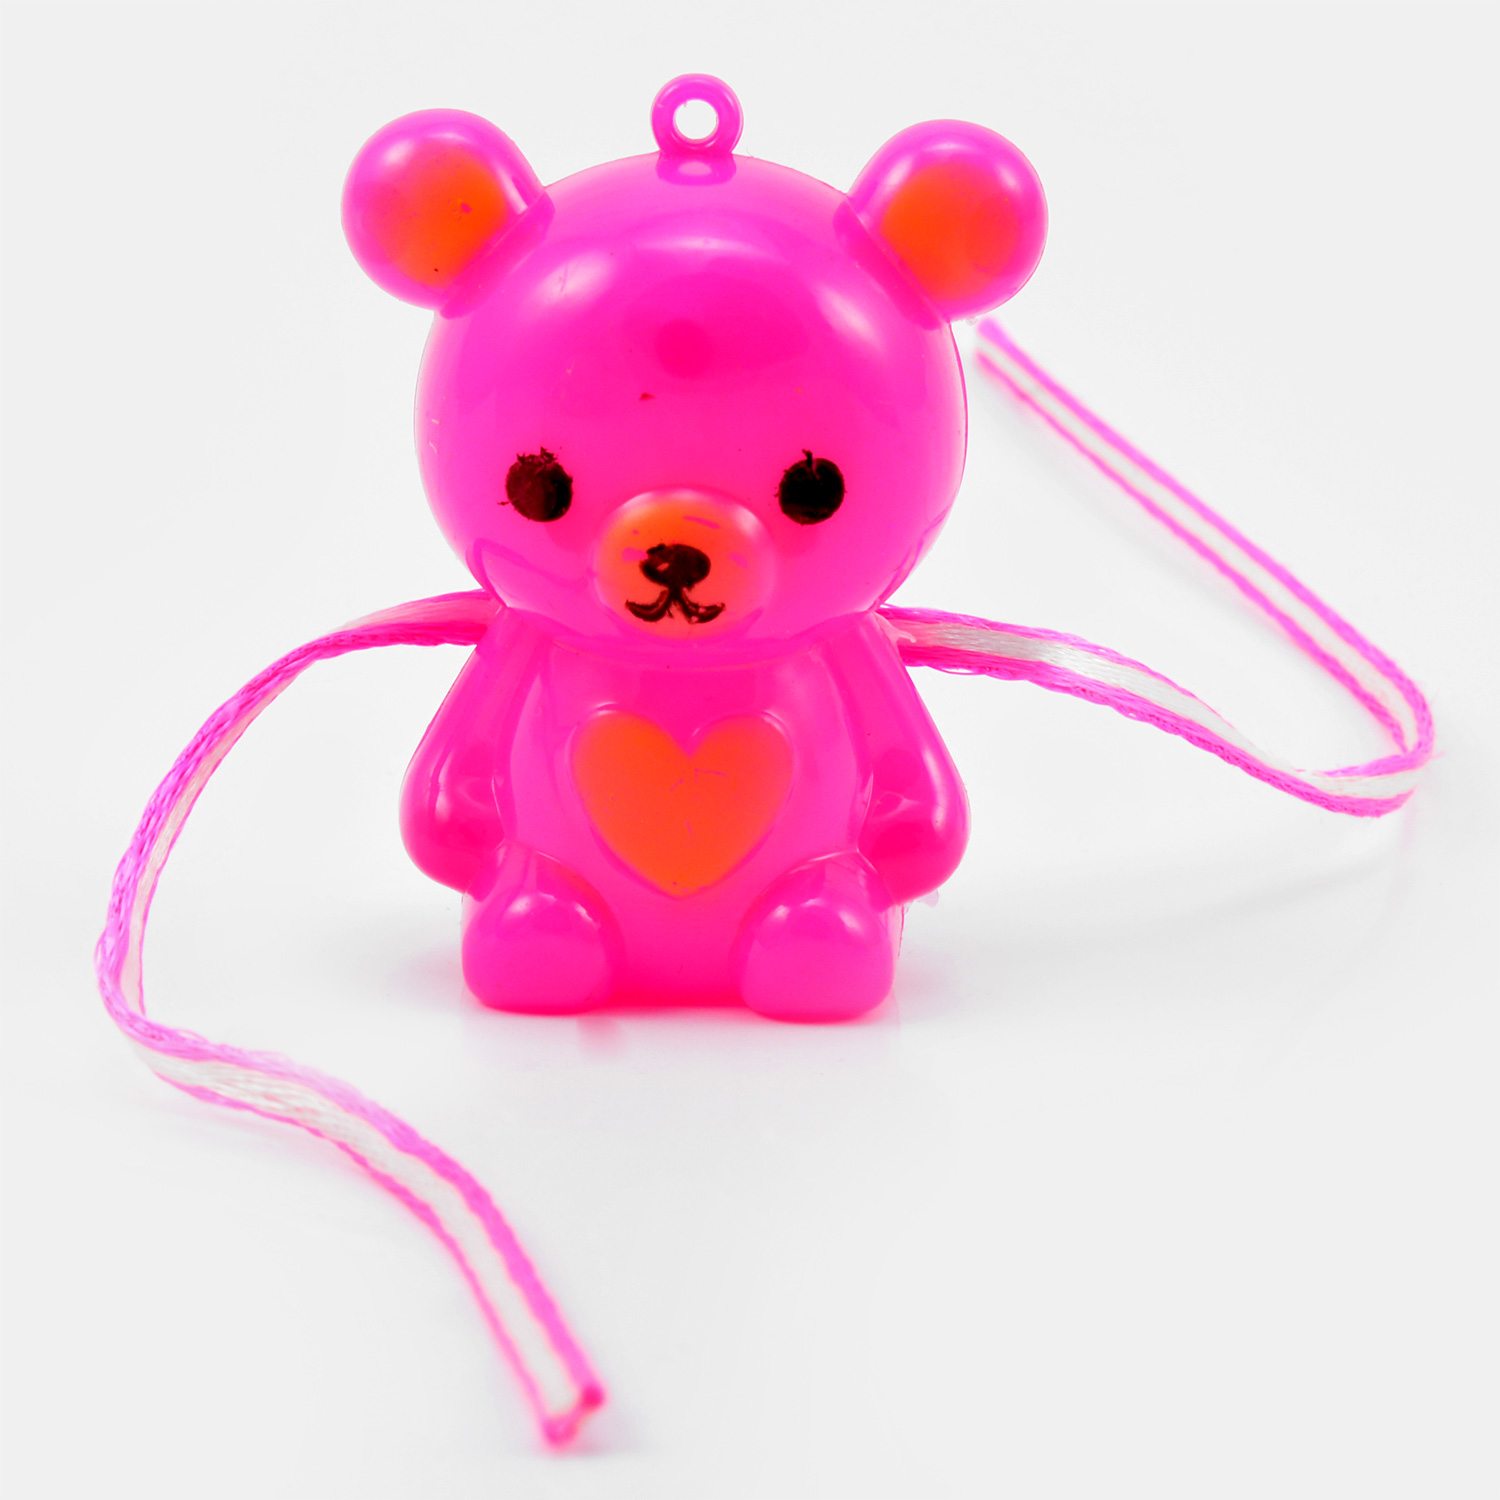 Pink Teddy Rakhi with Heart